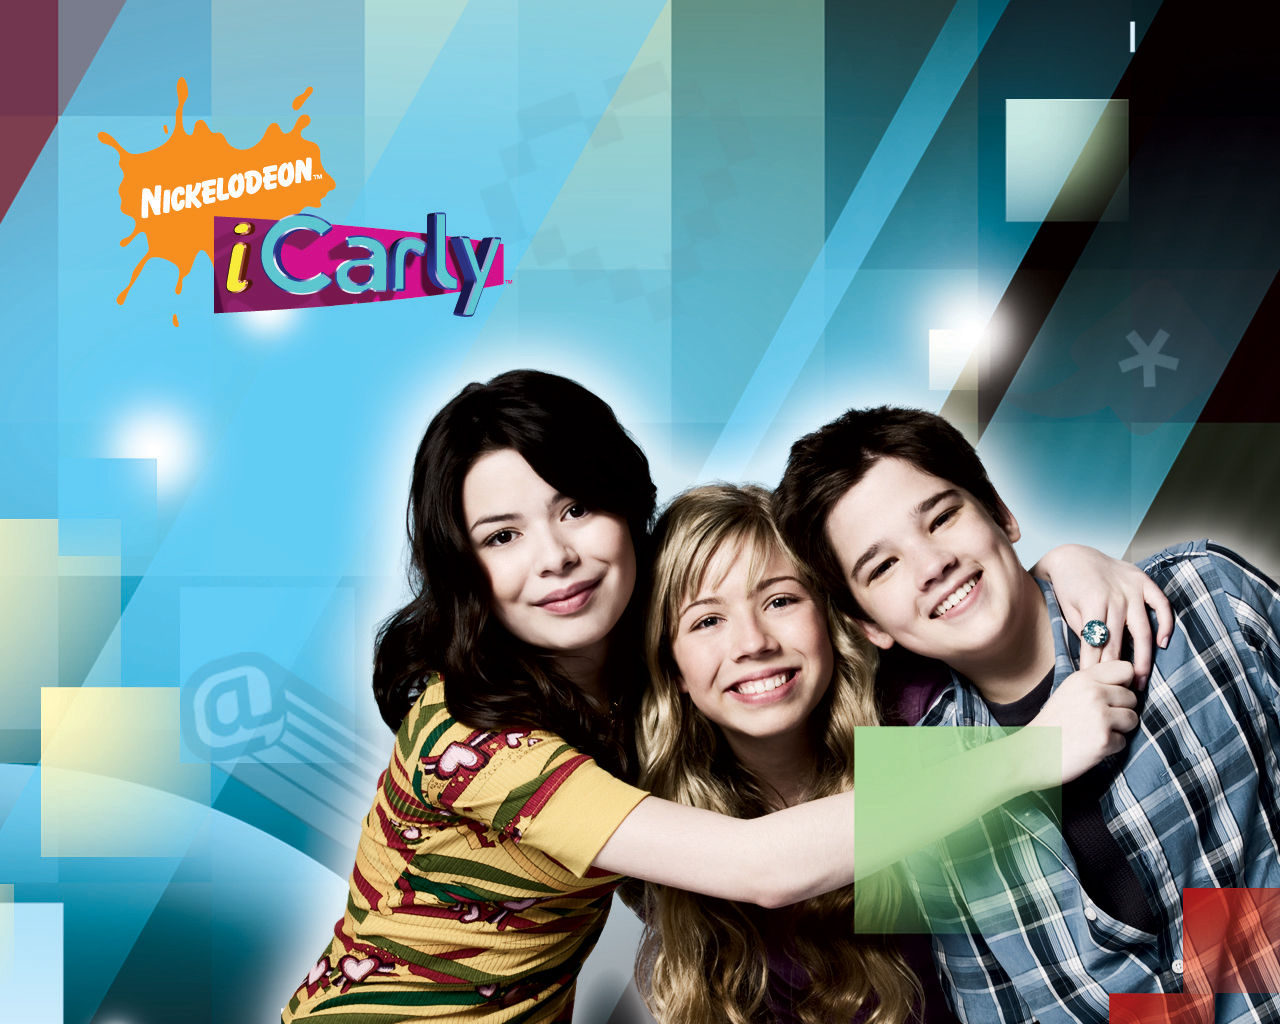 P Ster Icarly